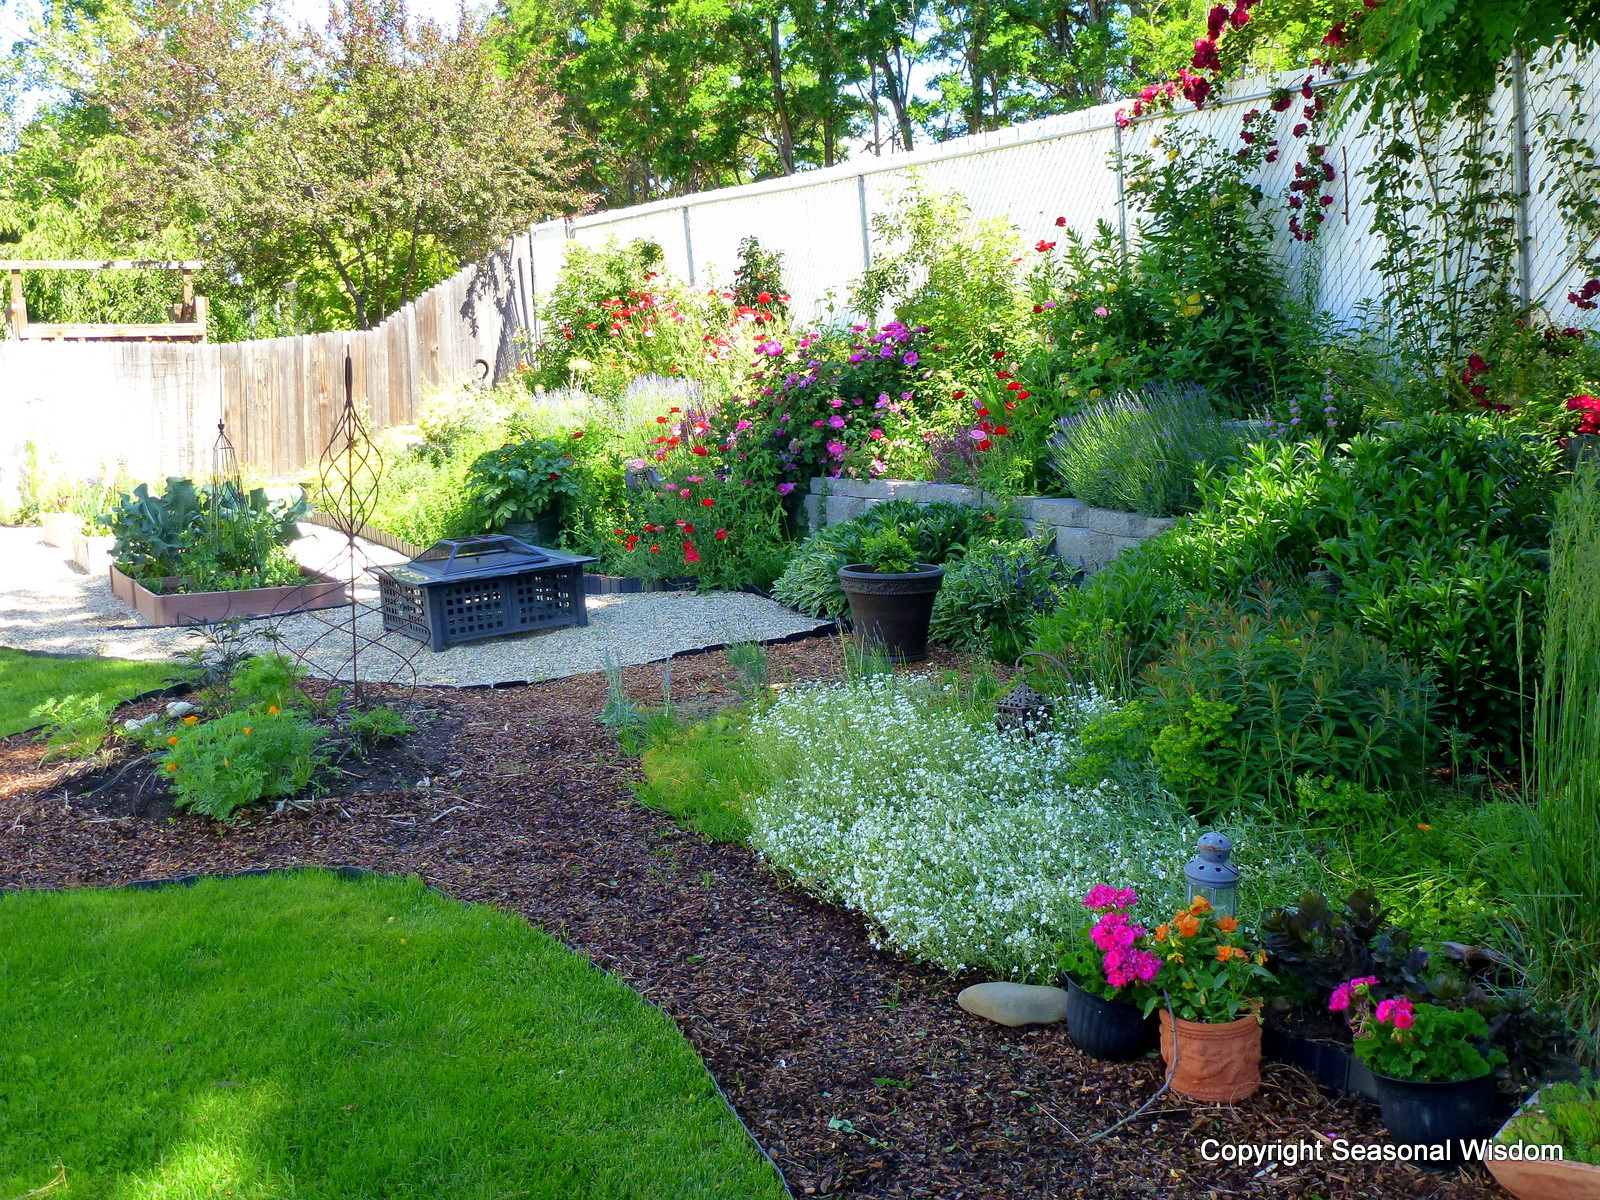 Landscaping landscaping ideas for very small backyards for Very small garden ideas